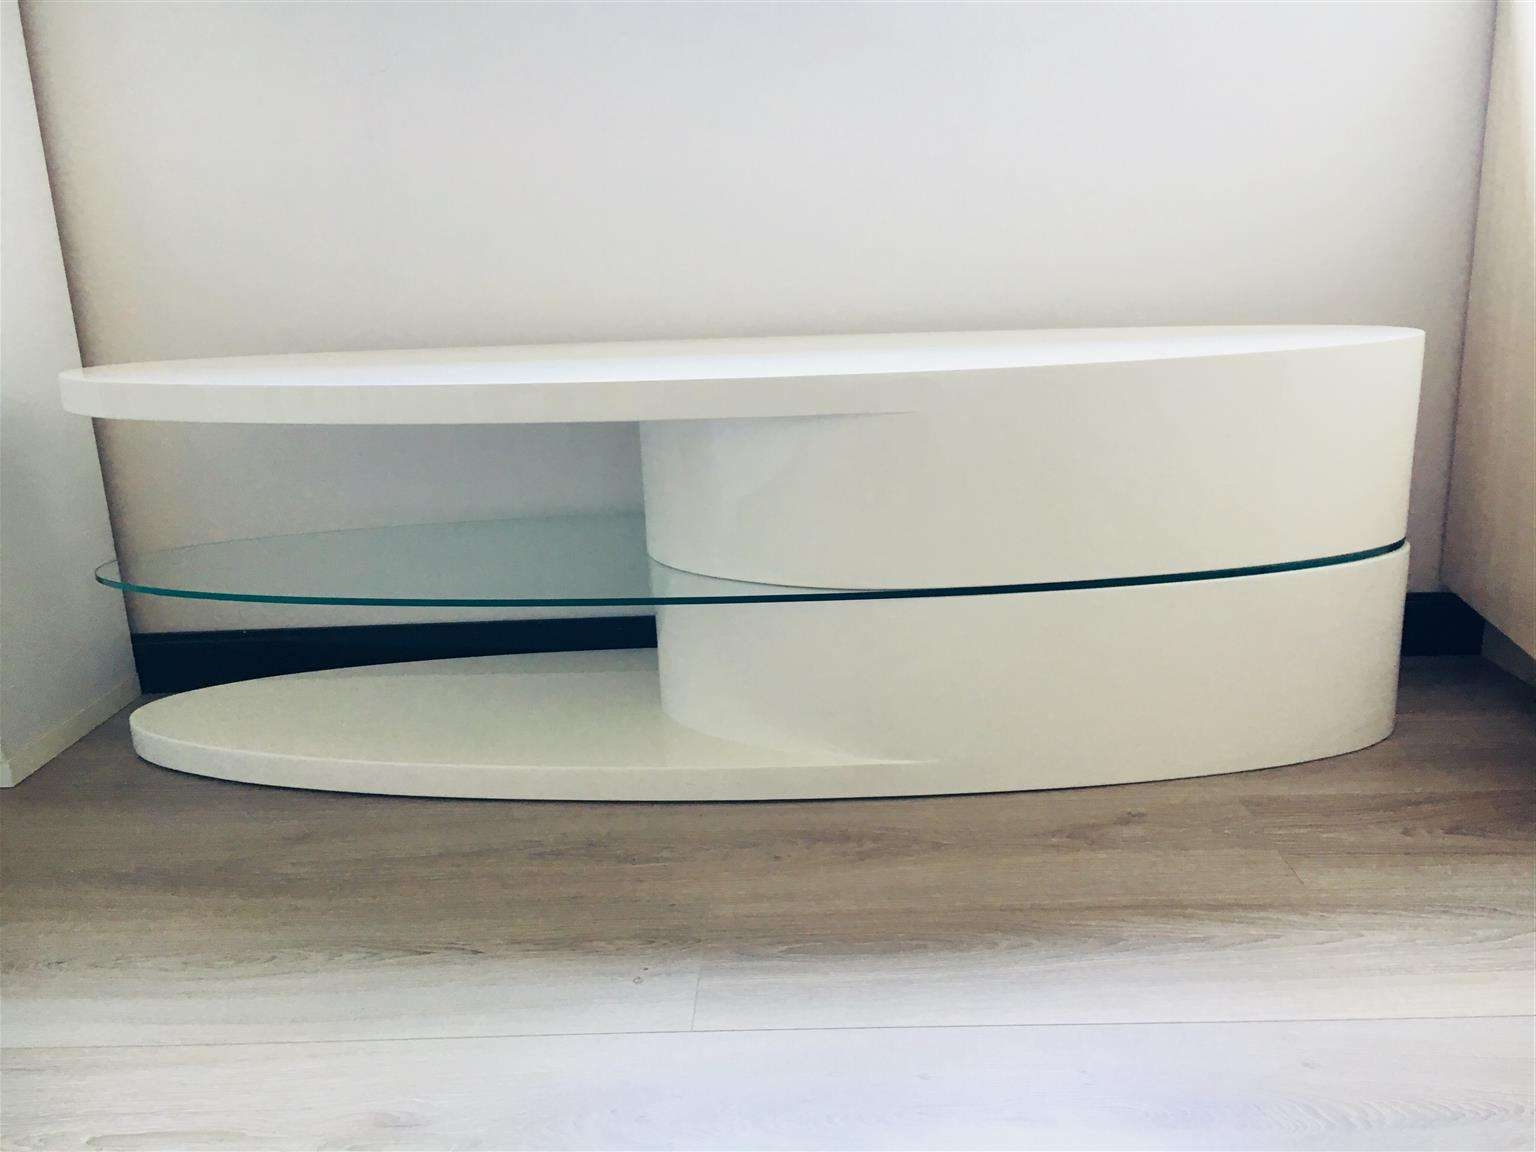 High Gloss White Tv Stand | Junk Mail Regarding Gloss White Tv Stands (View 12 of 15)